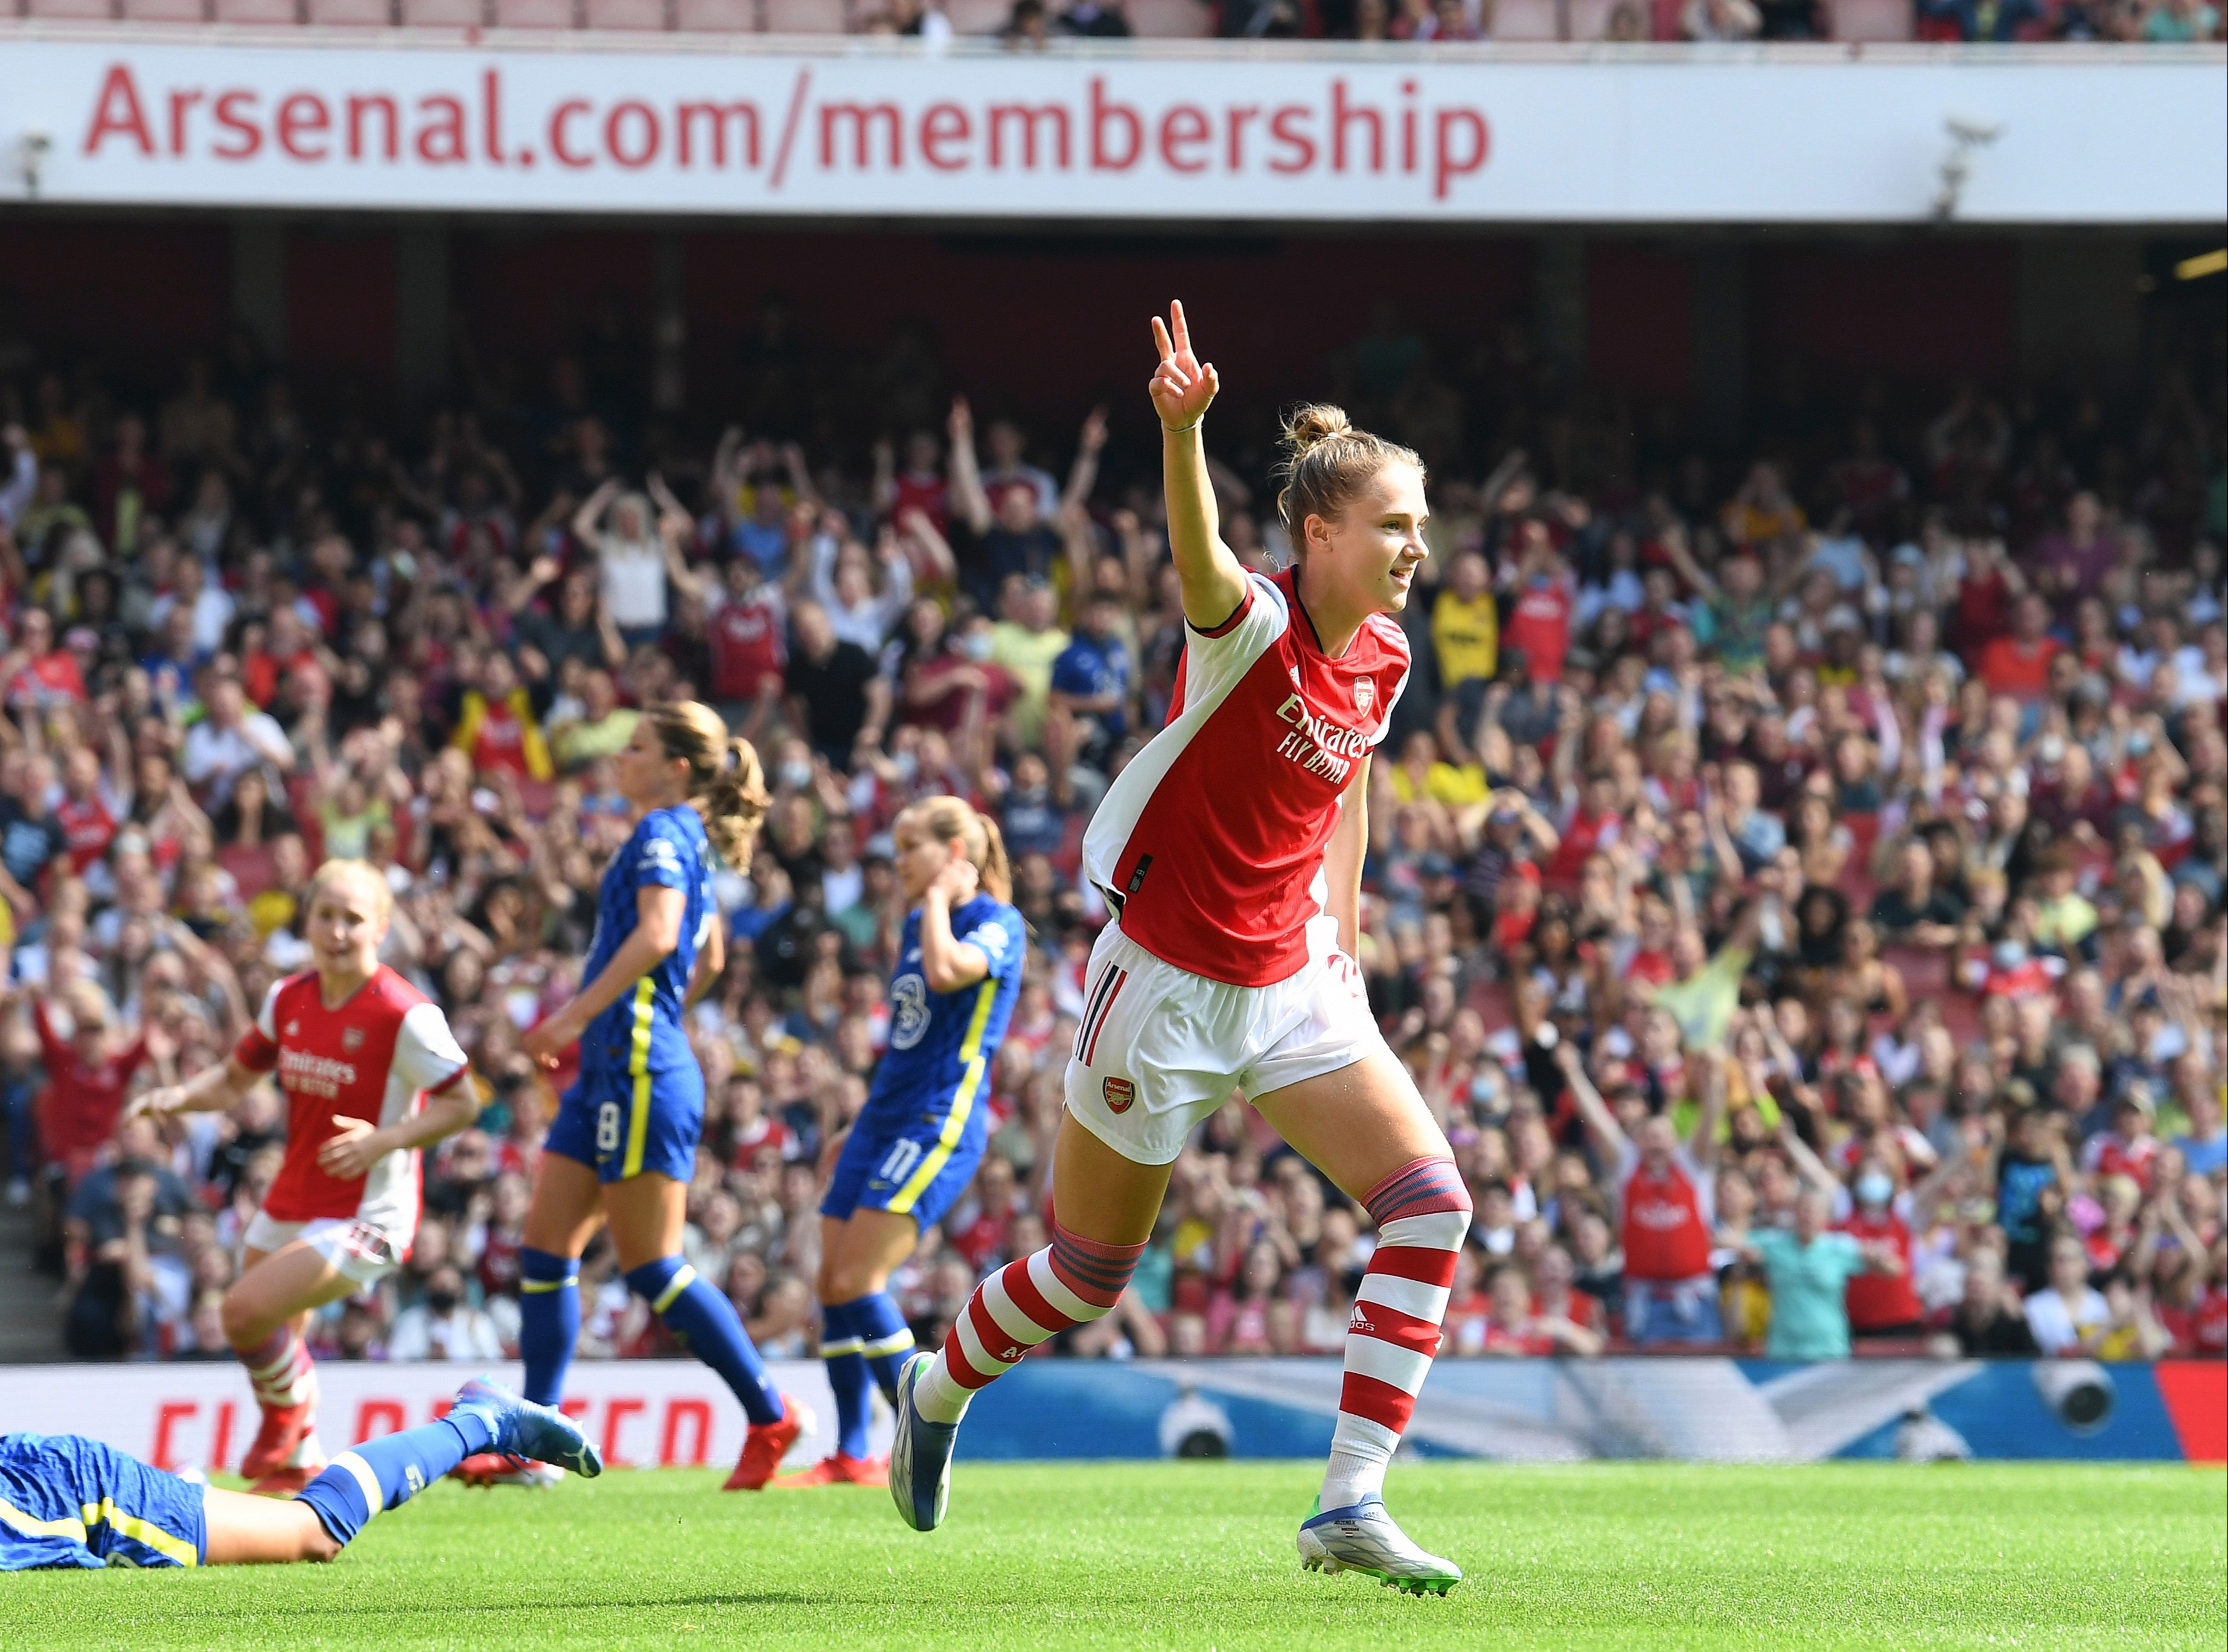 Arsenal defeated Chelsea in their WSL opener on Sunday